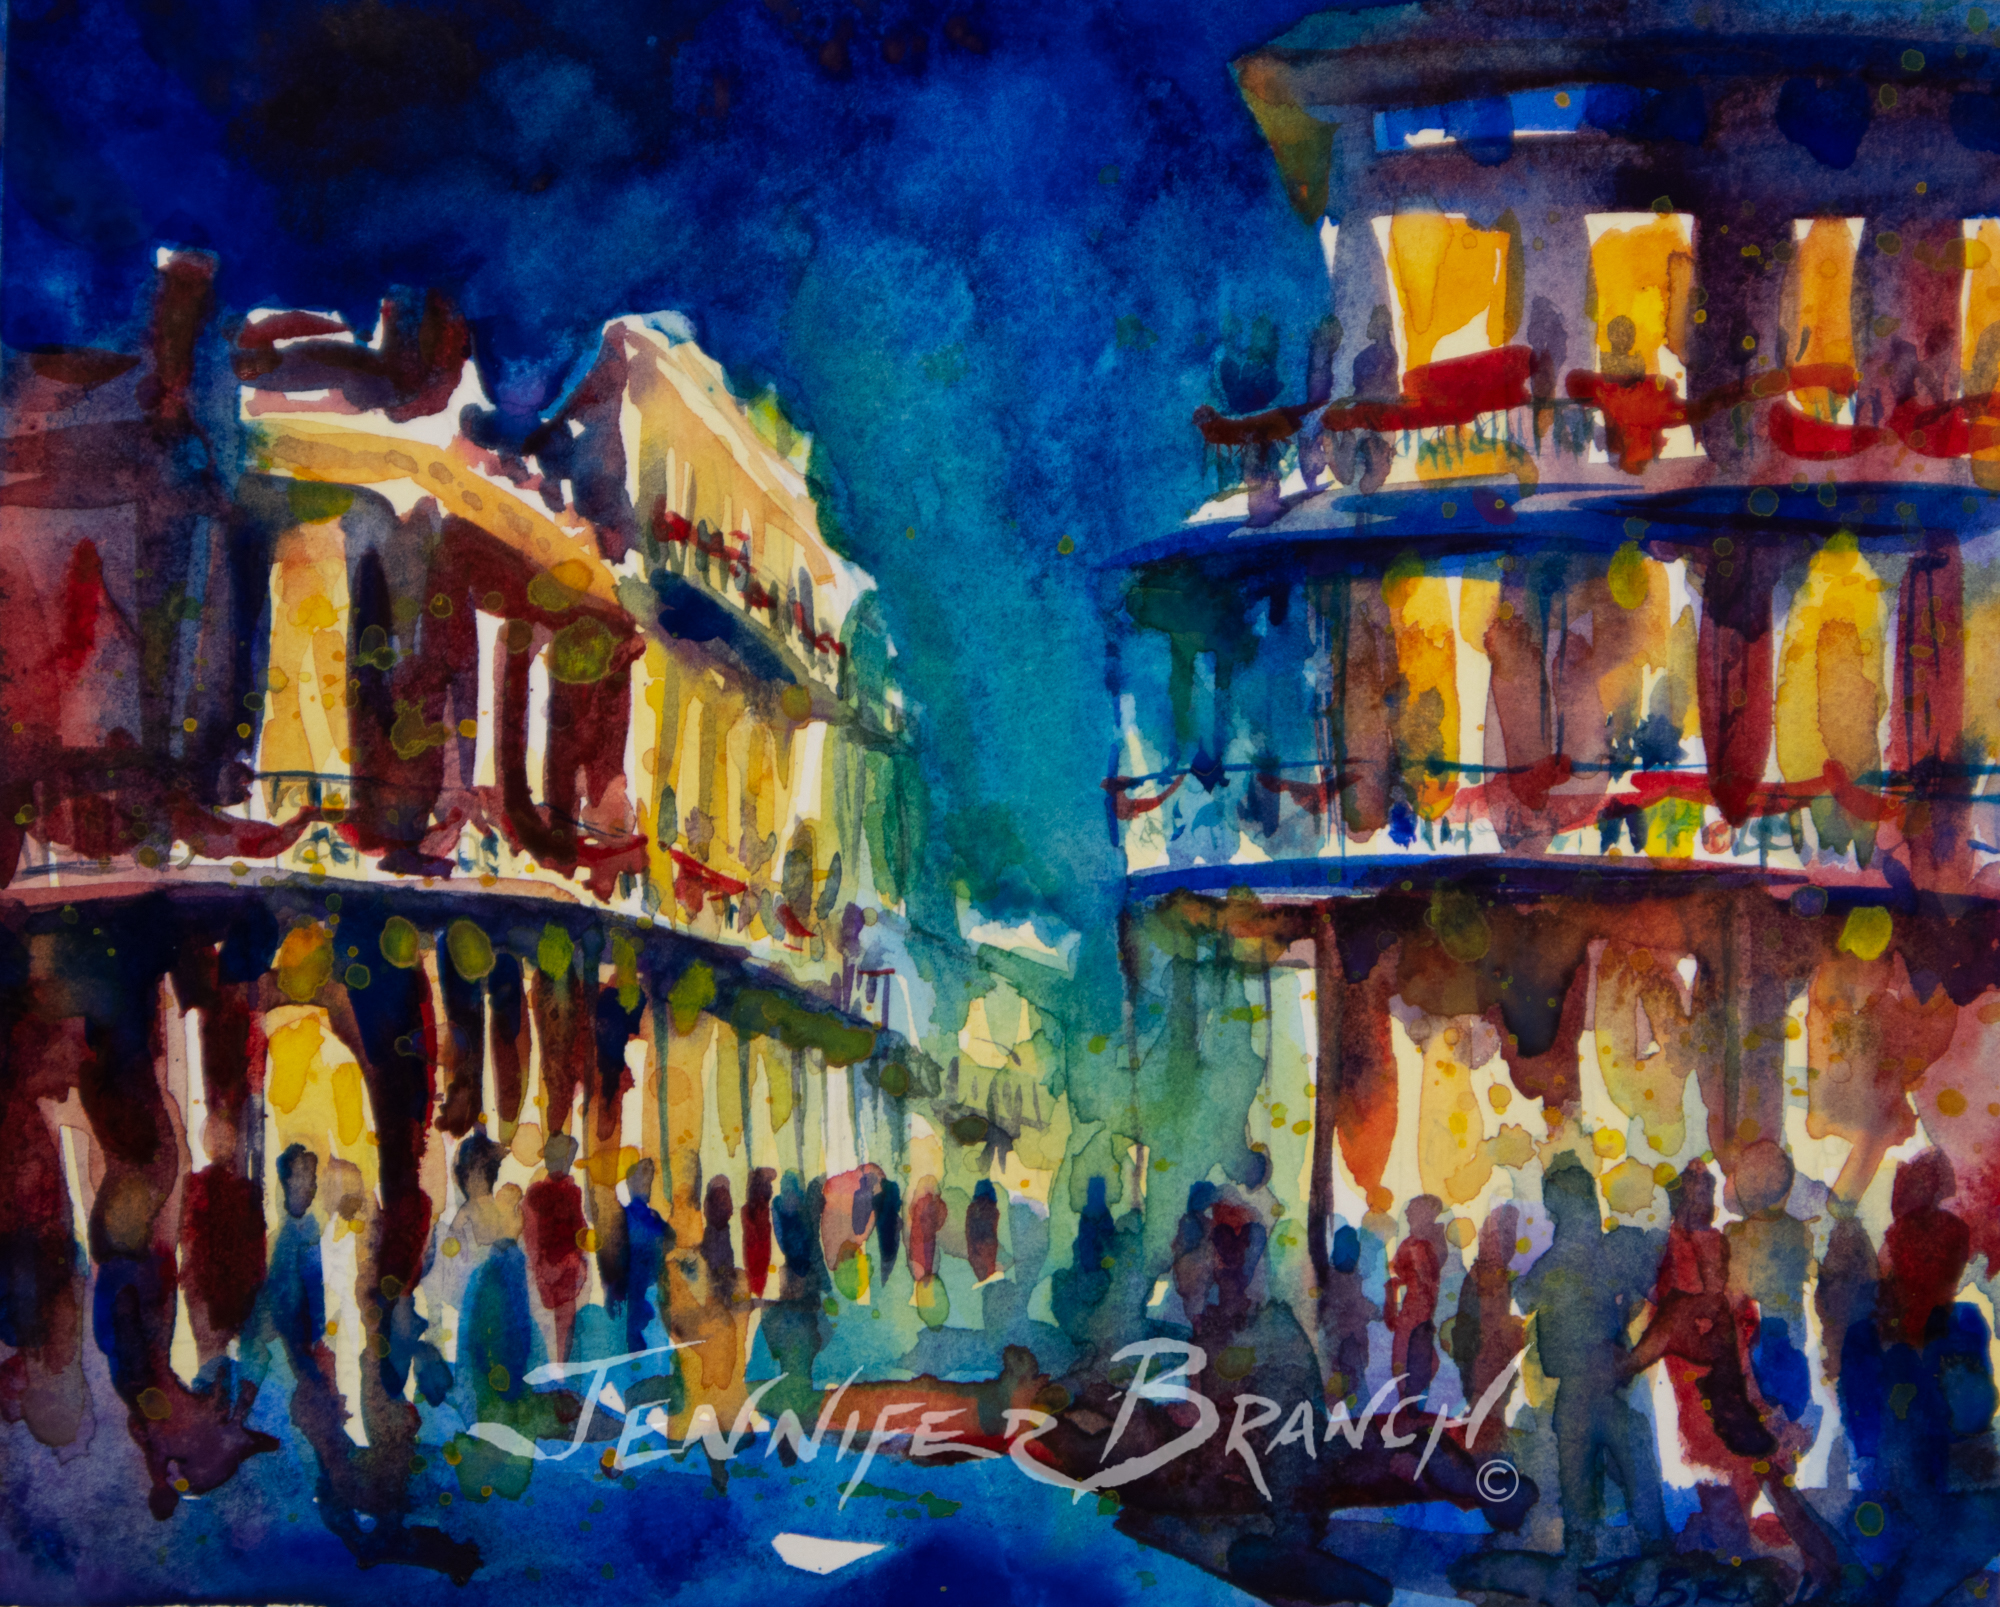 New Orleans Mardi Gras painting by Jennifer Branch.